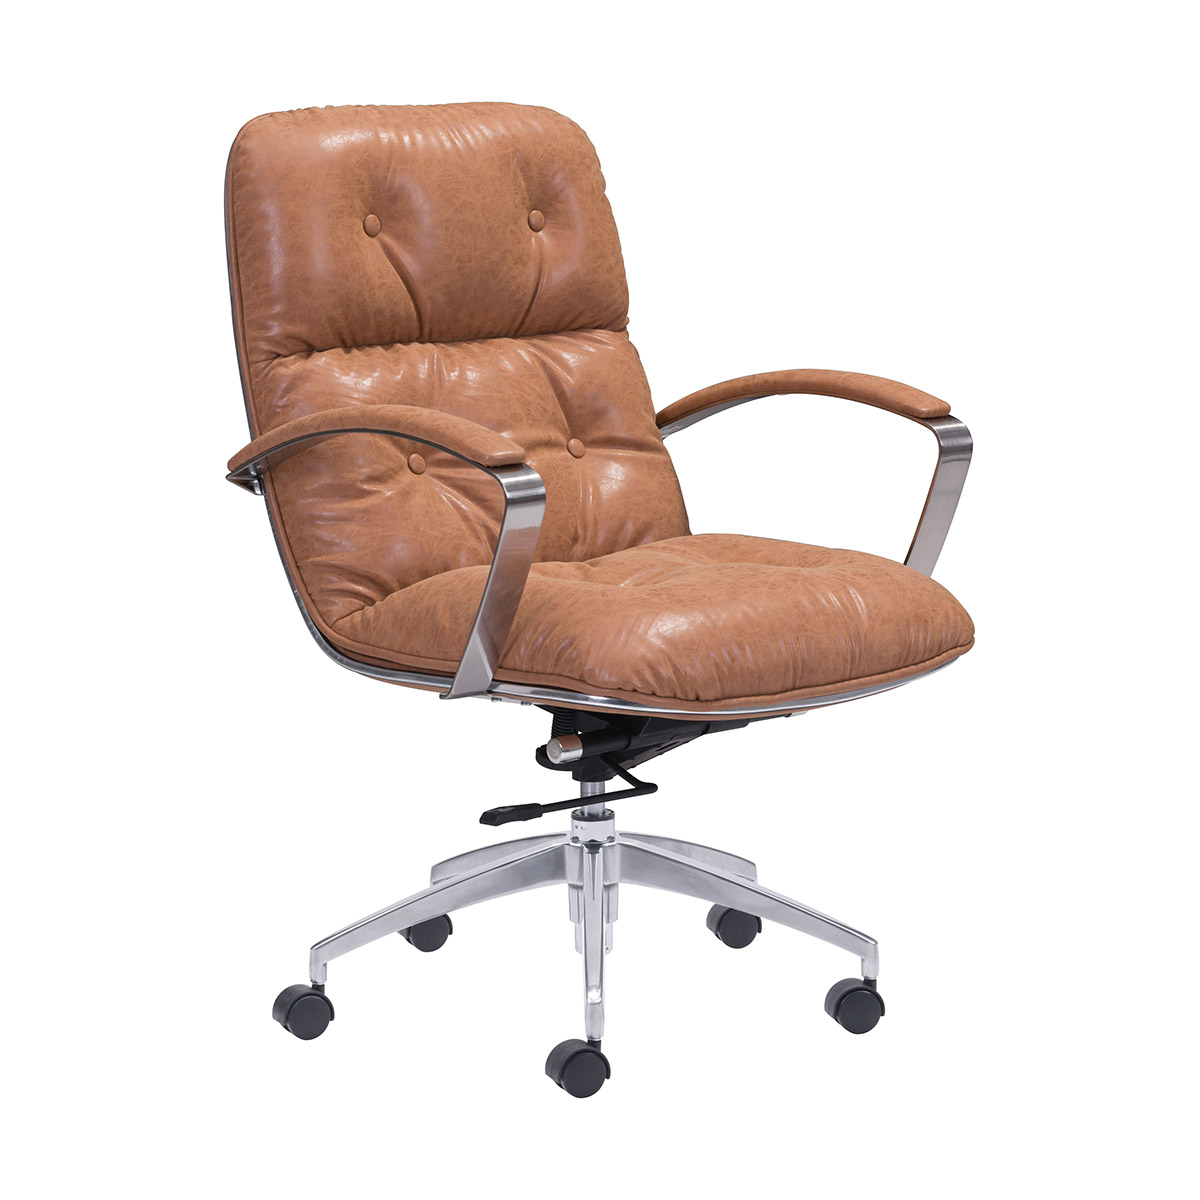 Zuo Era Avenue Office Chair Vintage In Coffee Boost Home